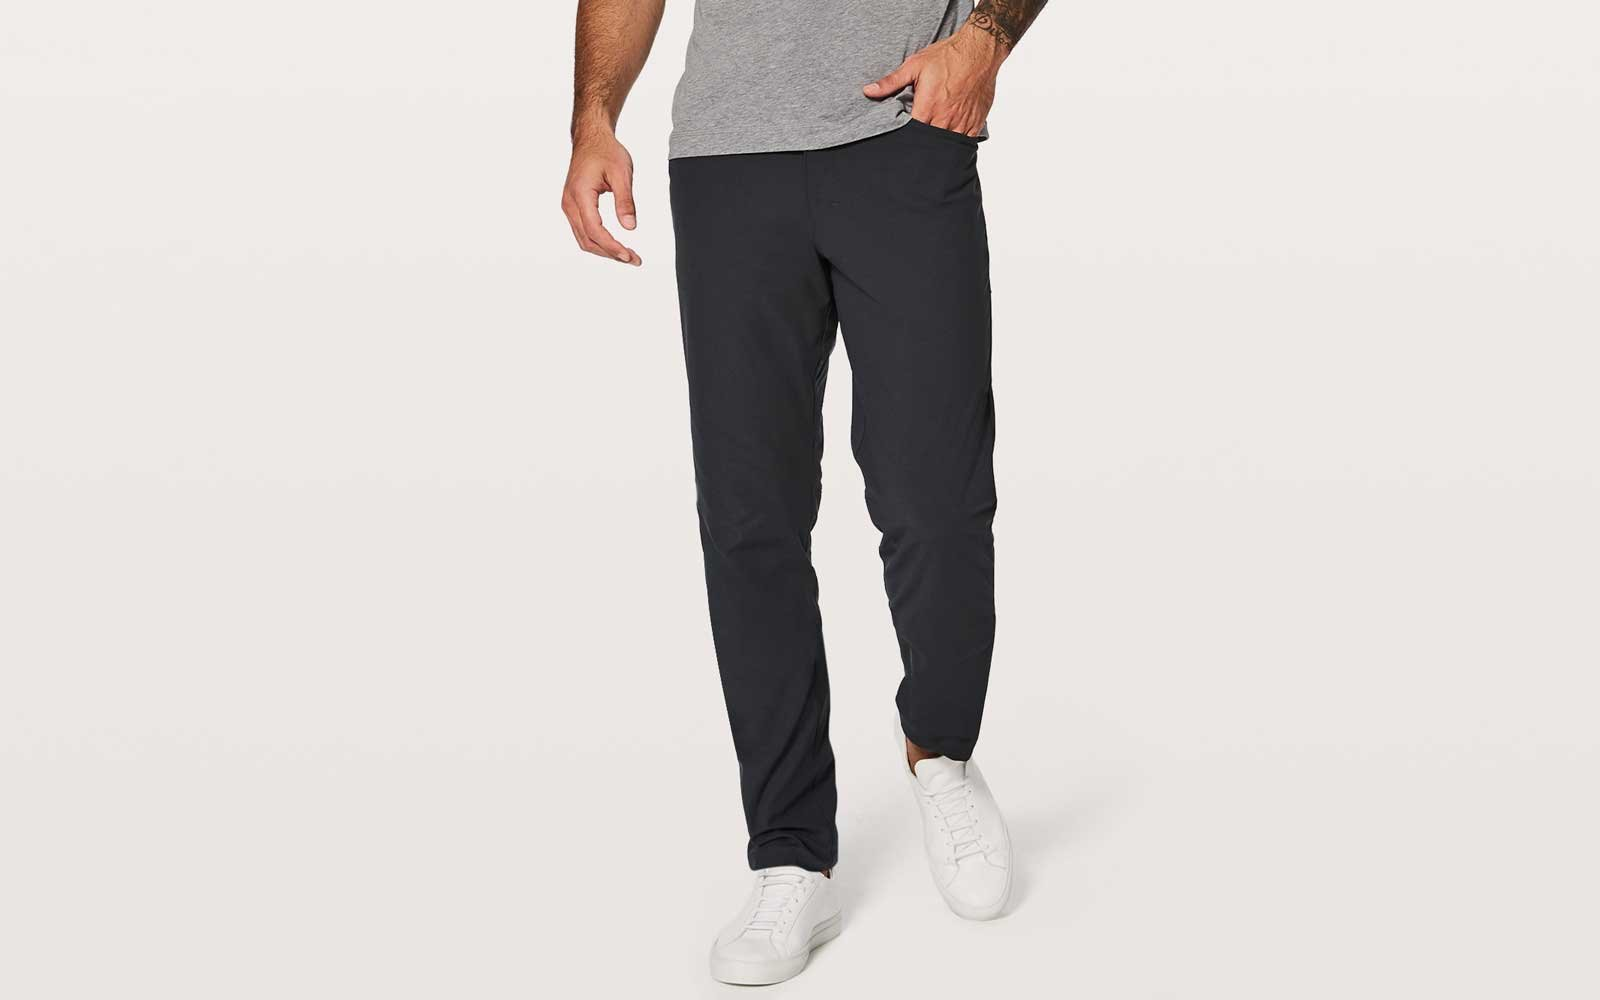 frat total like move jeans mugsy comfortable dsc feel look sweatpants hr dark mens most comforter